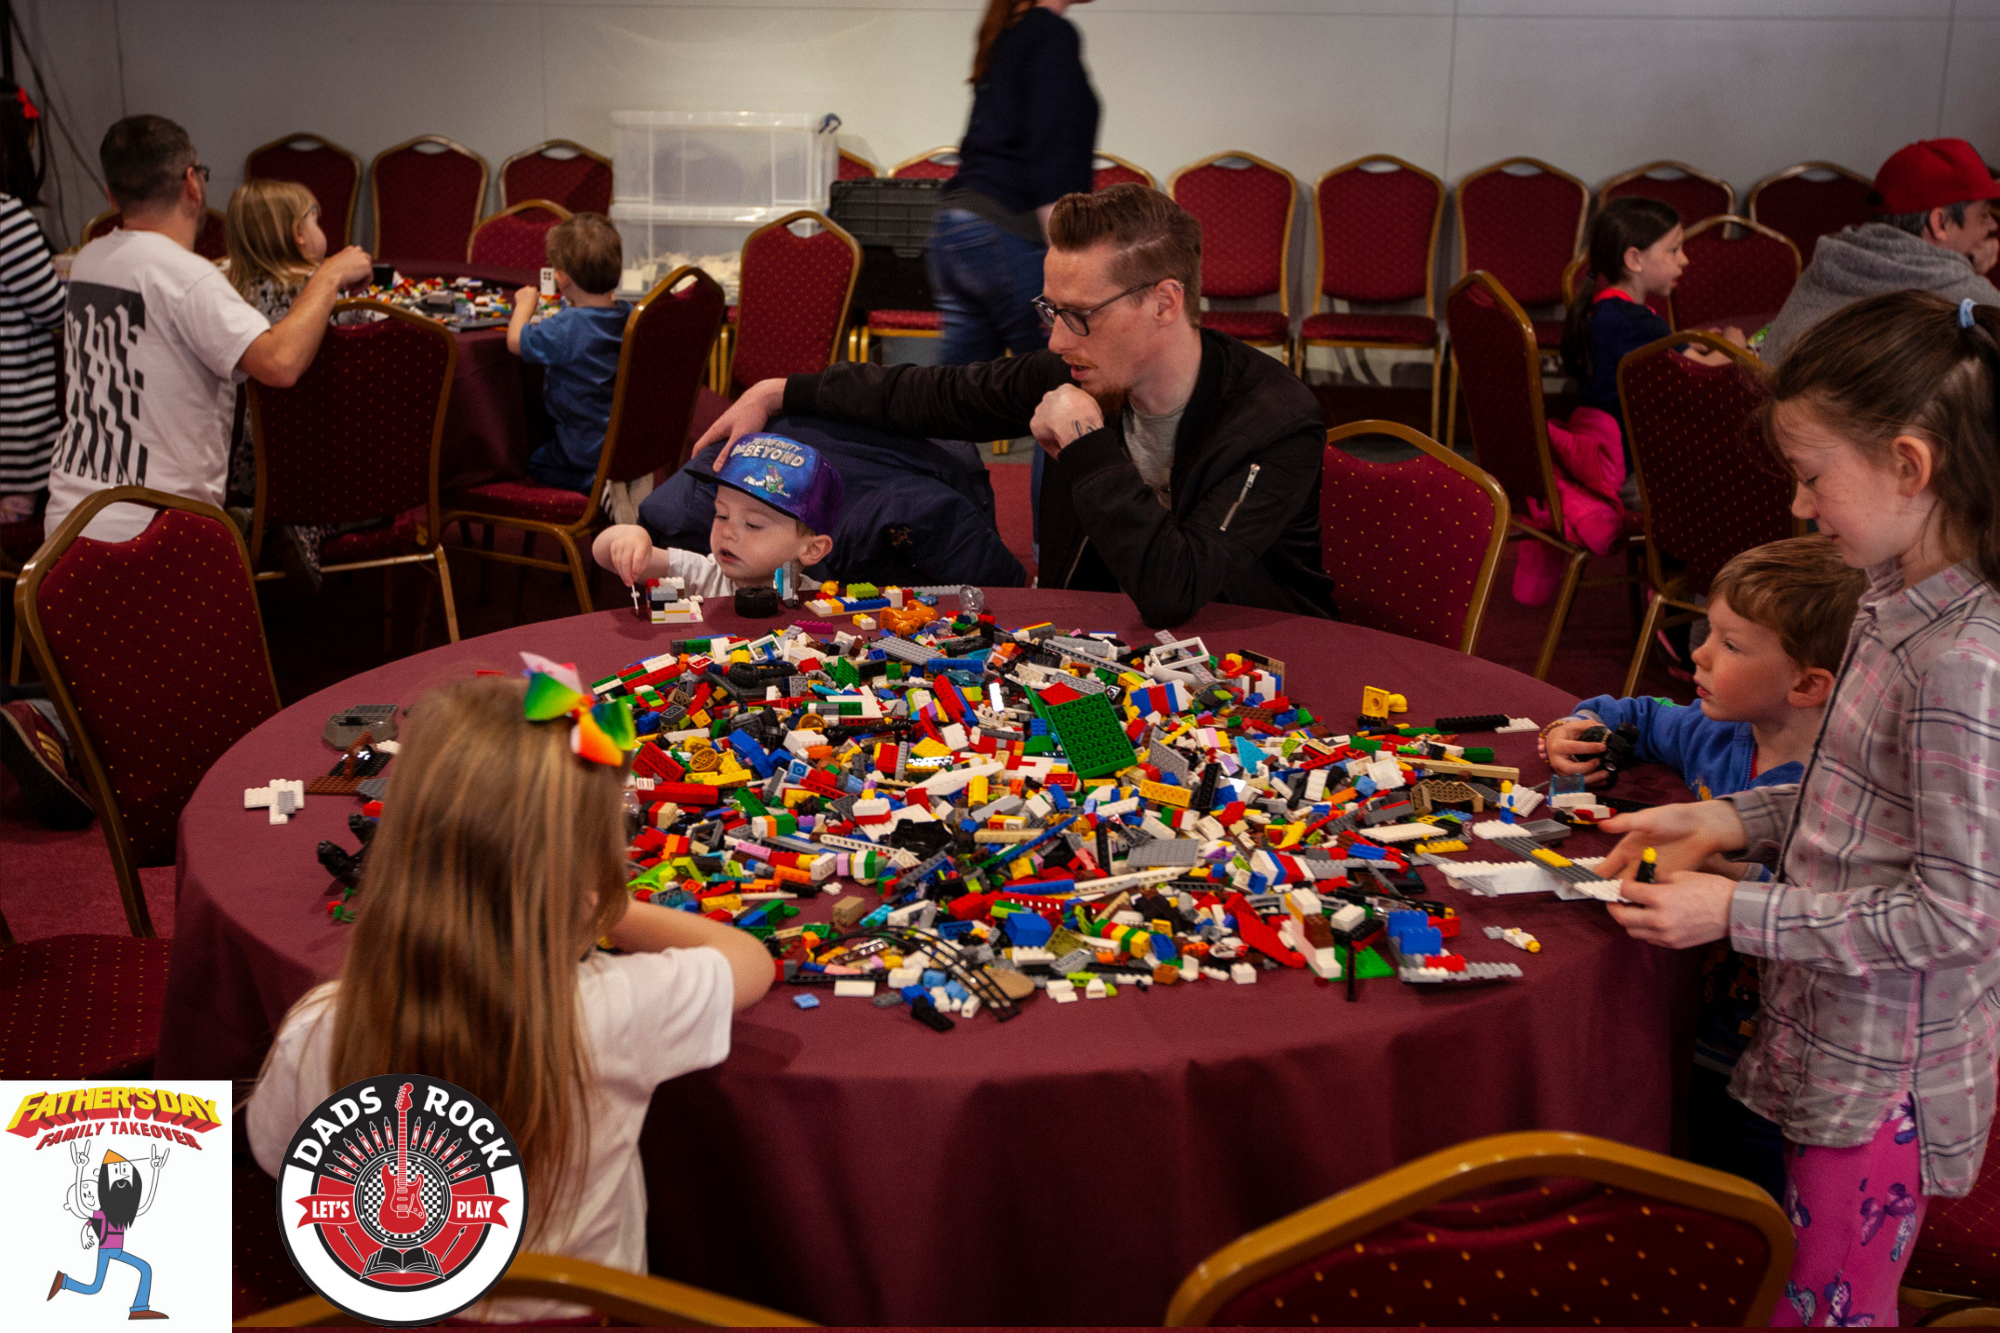 The dads were more than happy to get stuck in at our lego tables.